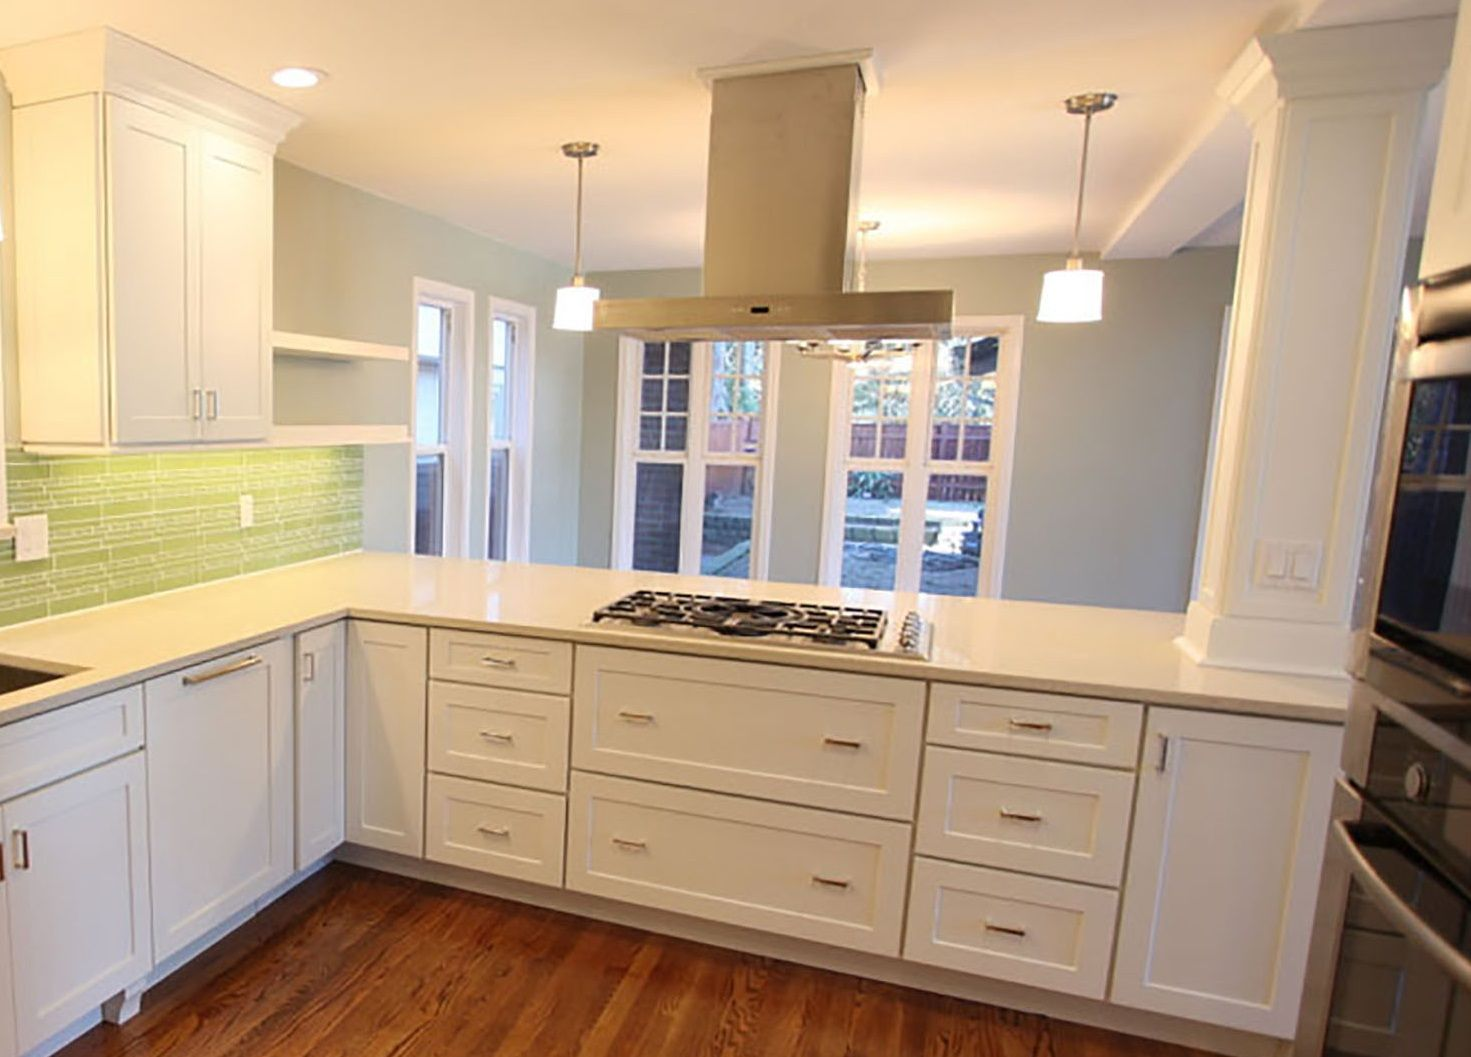 Kitchen Island With Range Kitchen Peninsula With Cooktop Stainless Range Hood And